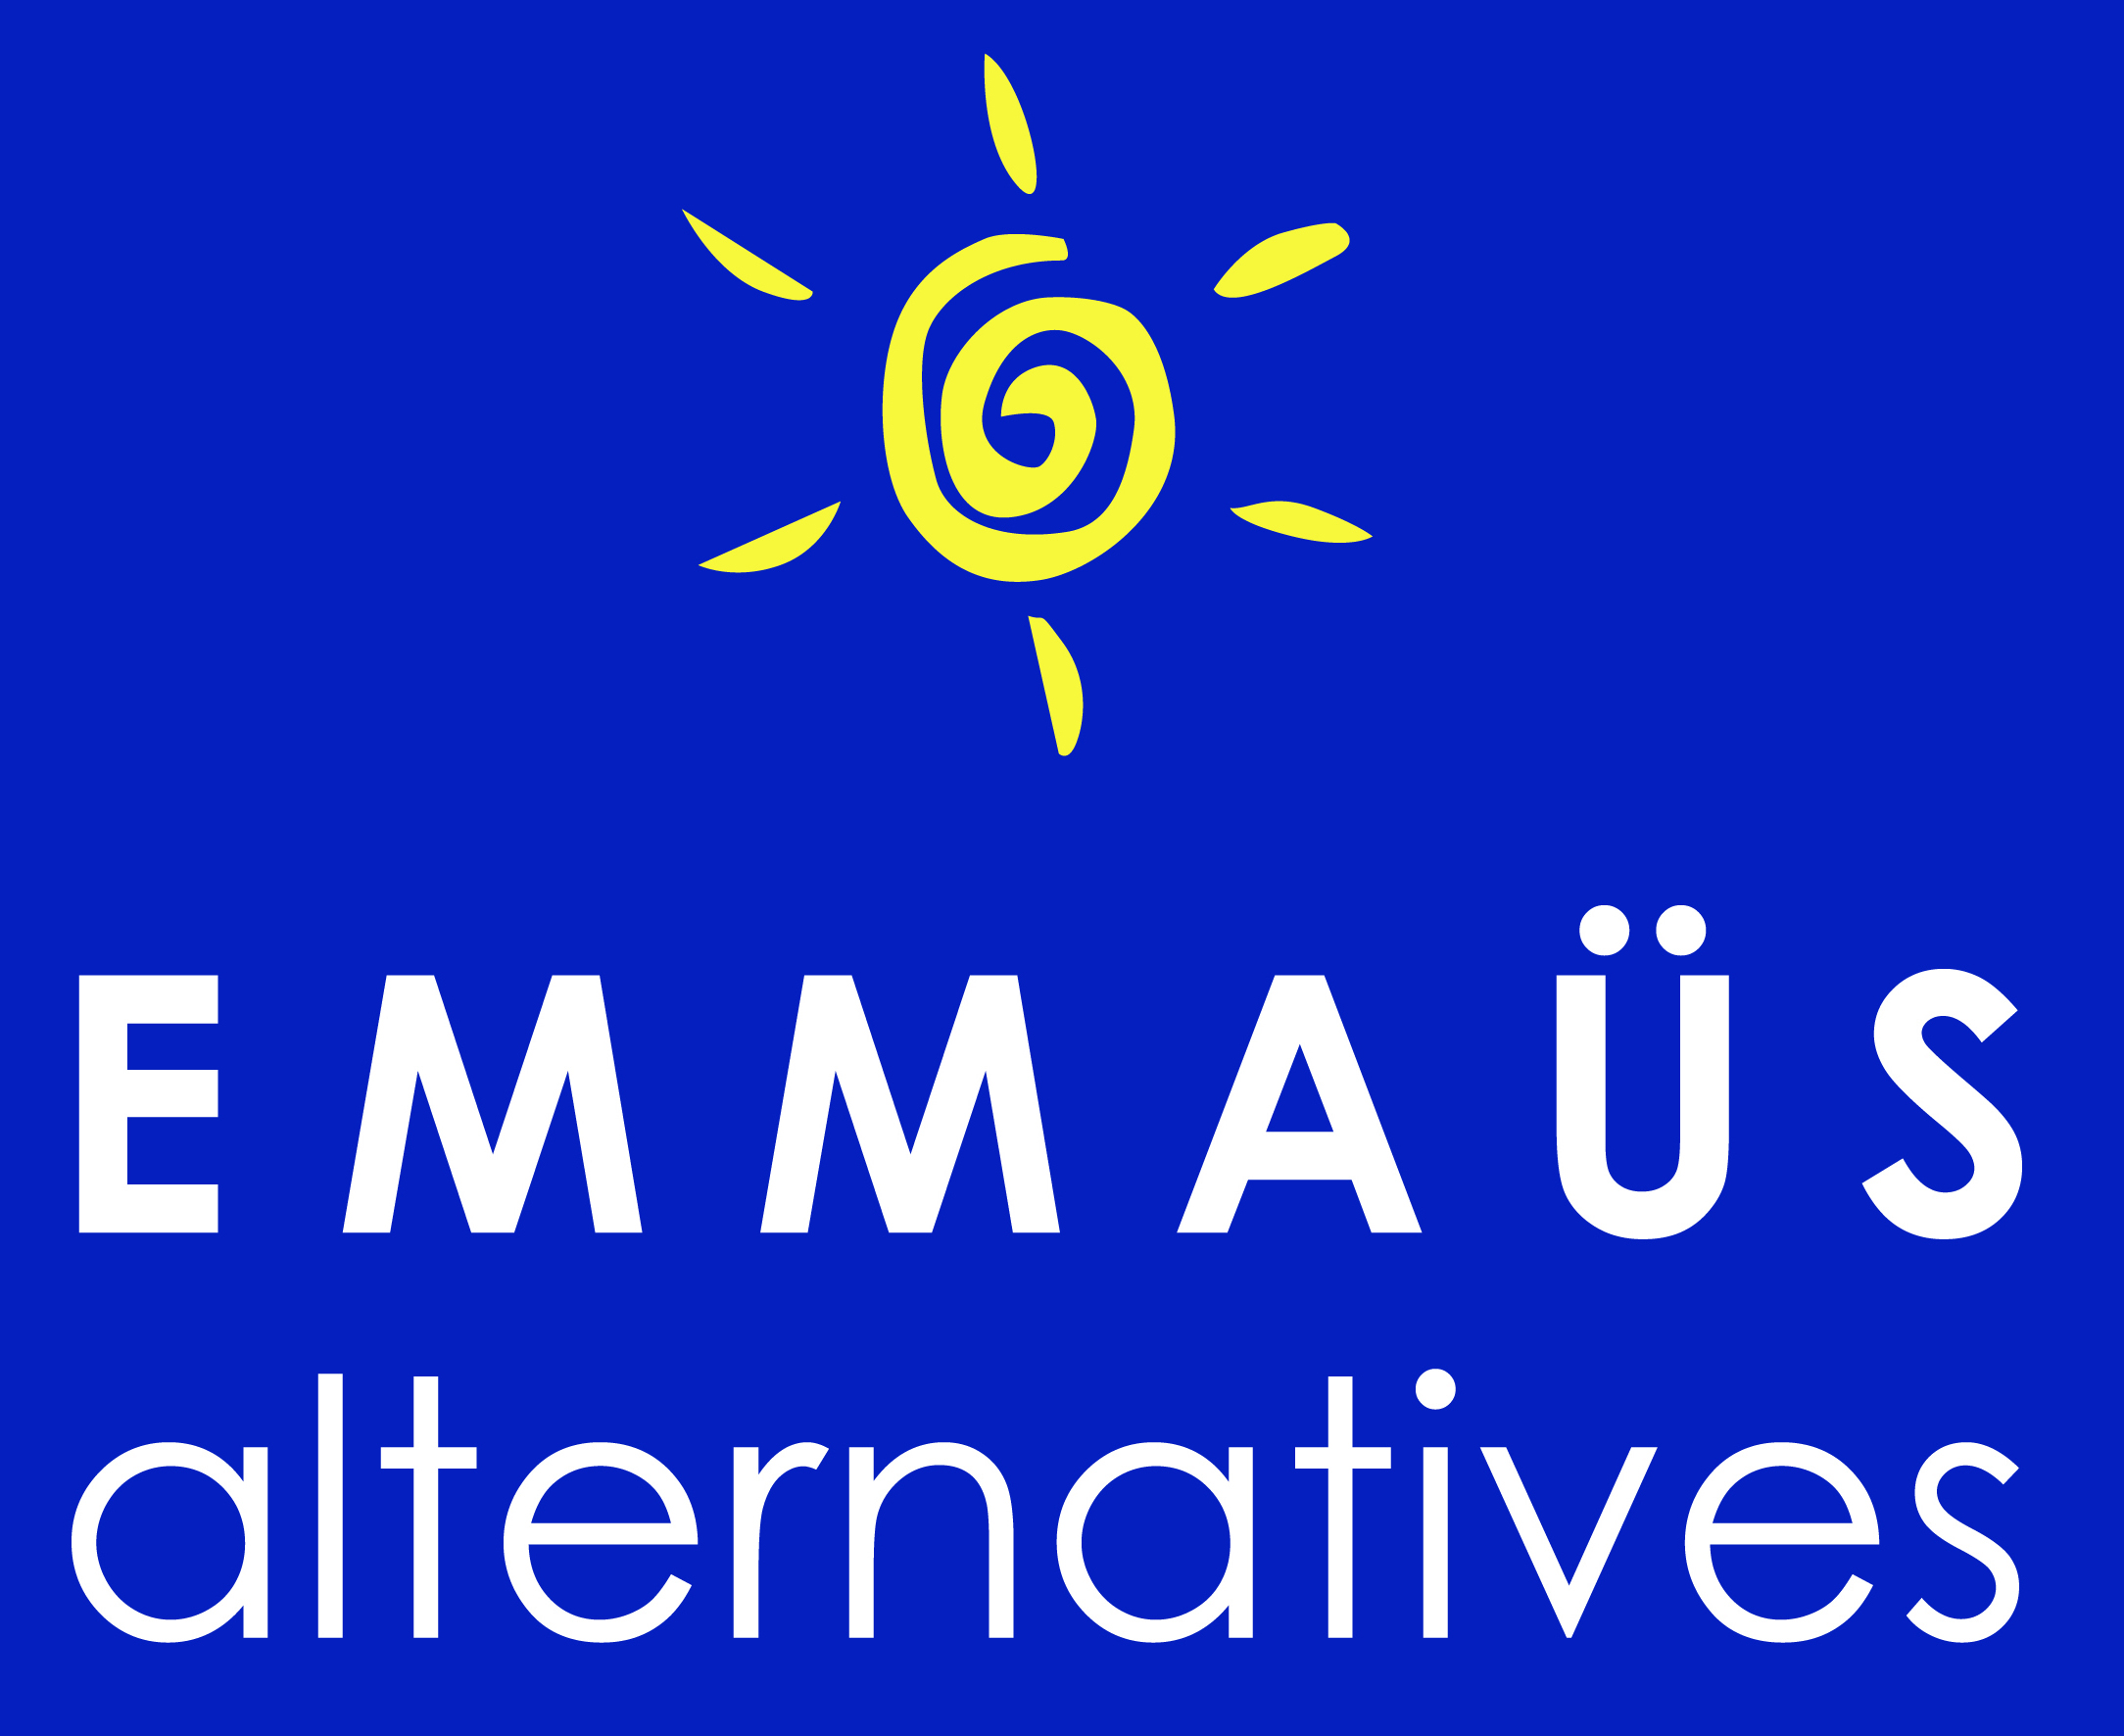 EMMAÜS Alternatives